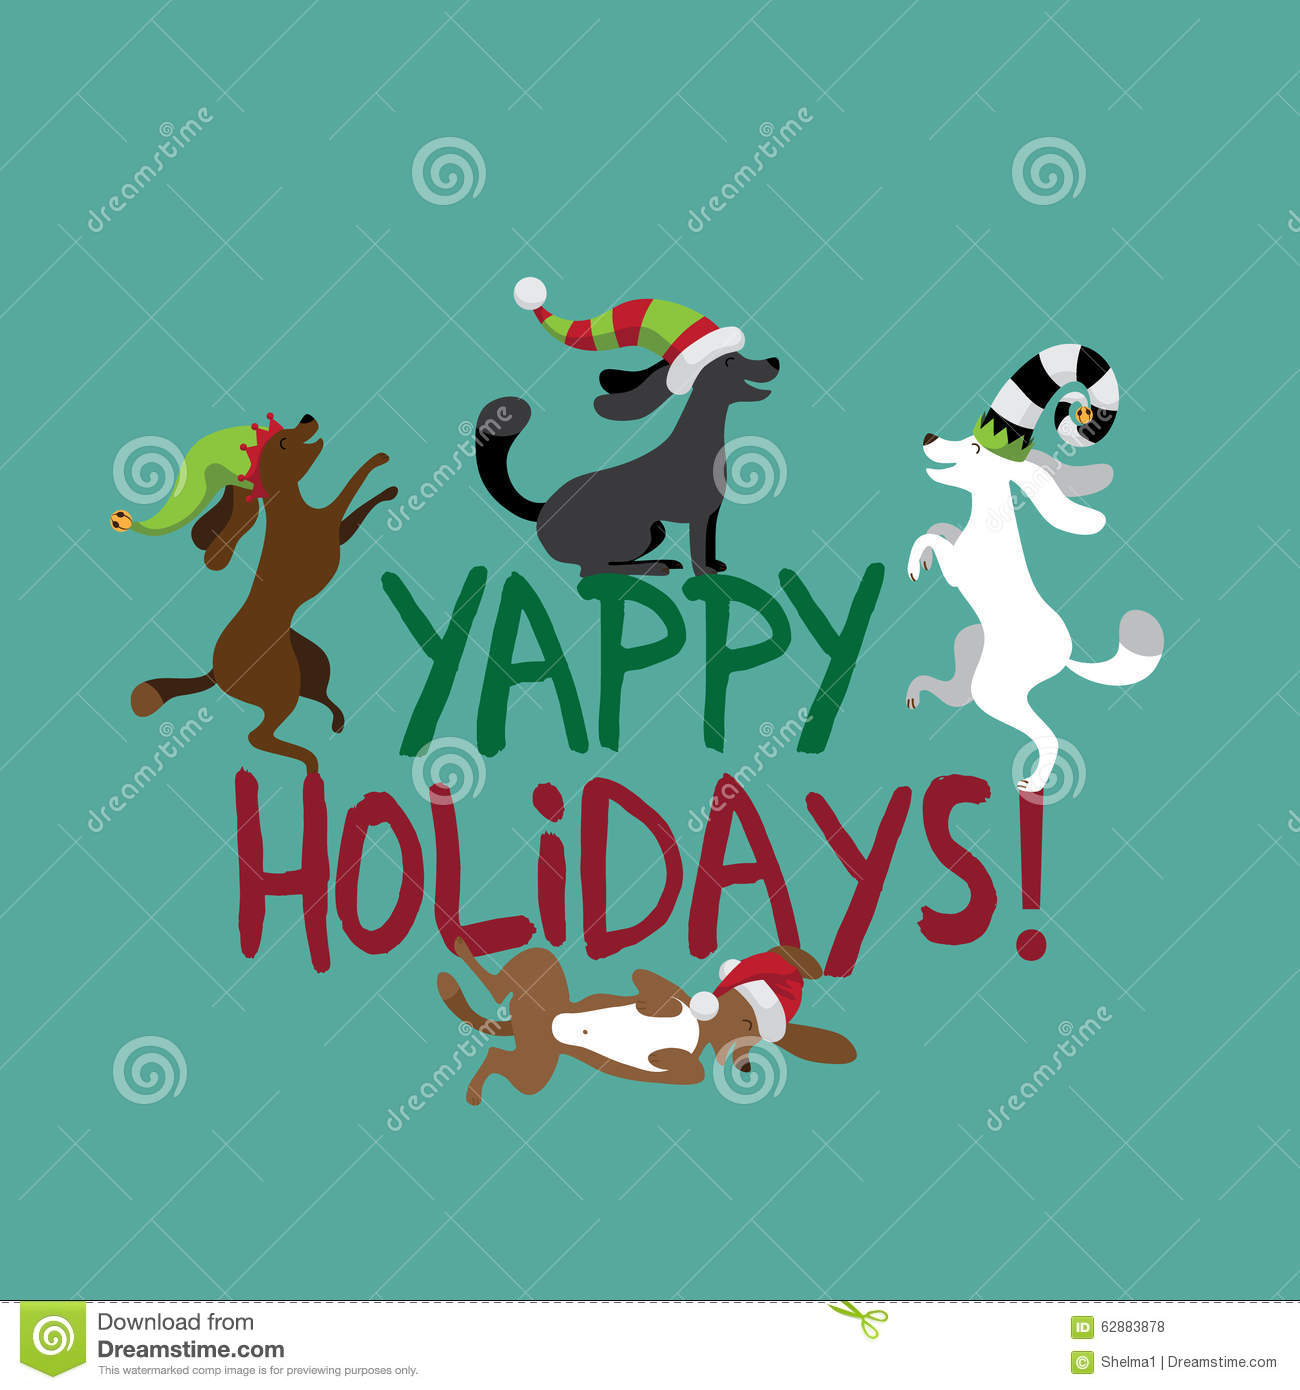 Happy Holidays Cute Dogs Wearing Silly Hats Stock Vector